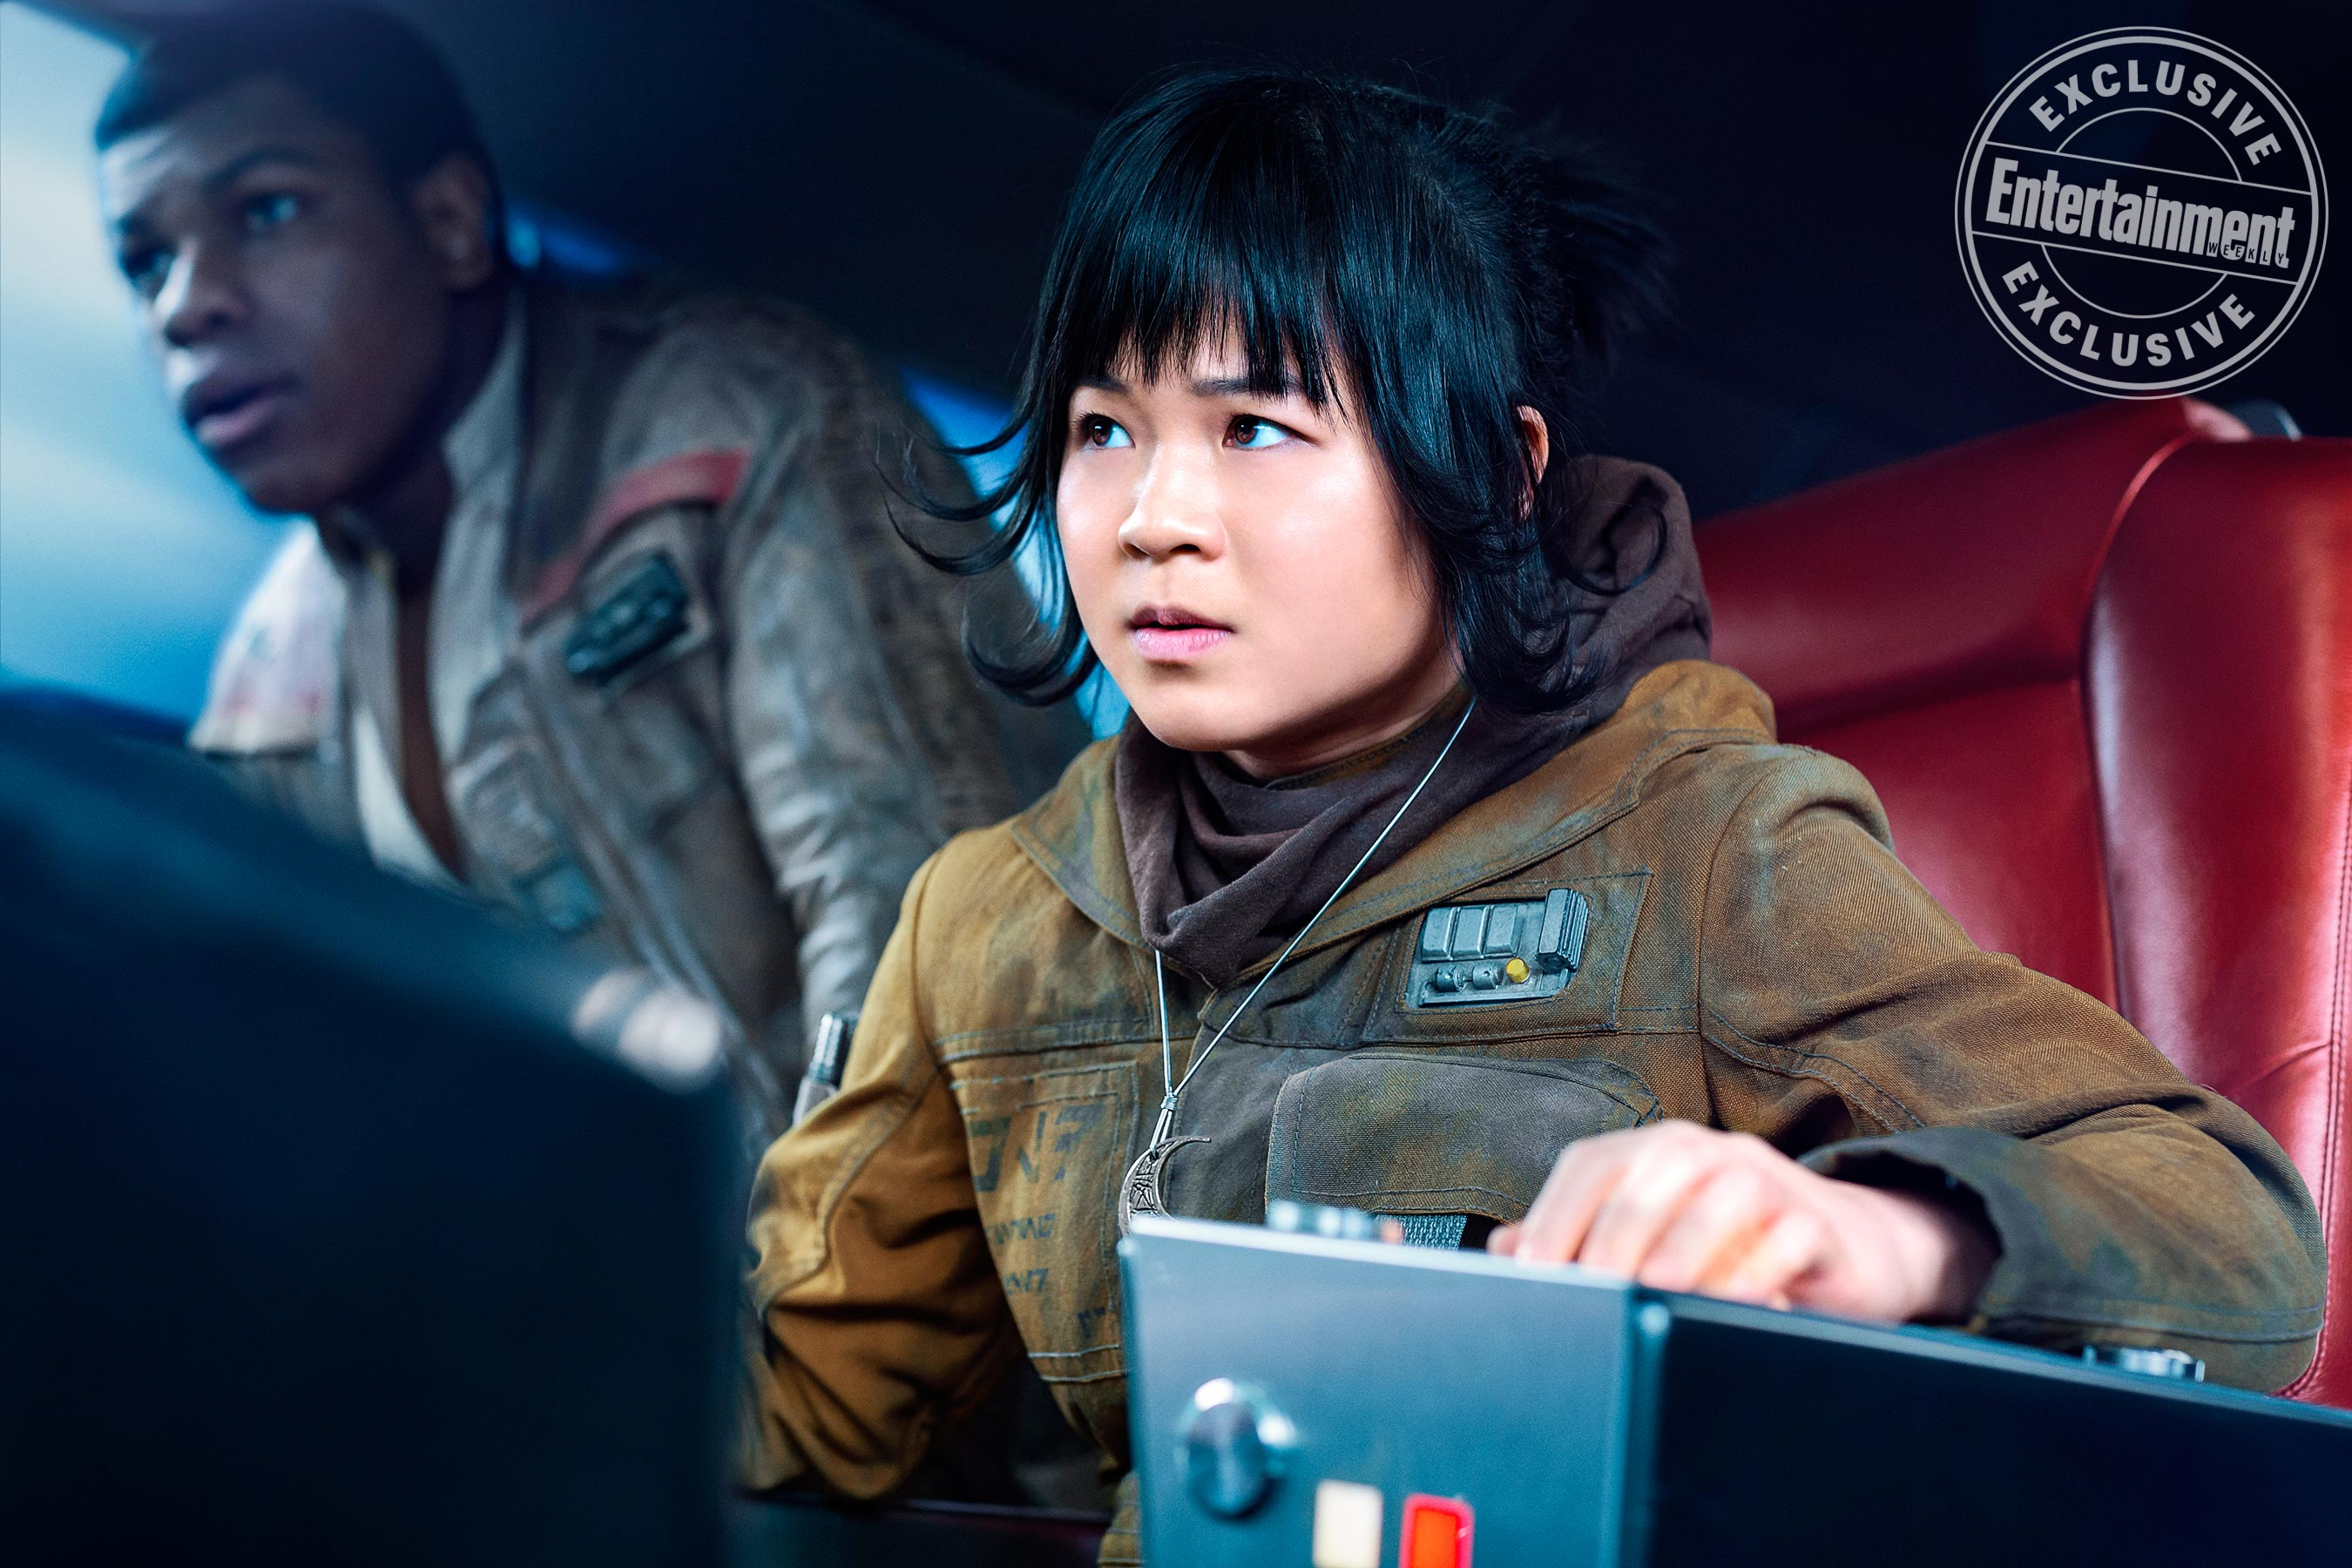 New Star Wars: The Last Jedi Action Shot Spotlights Rose And Her Mystery Necklace